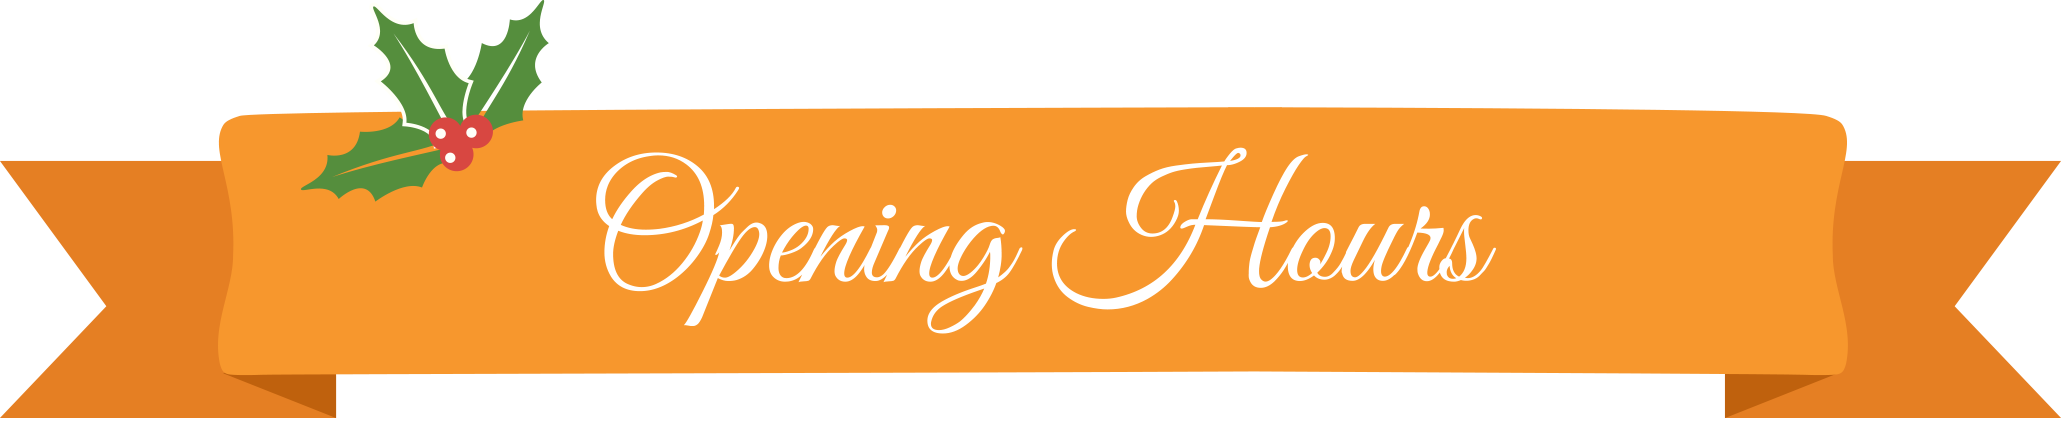 opening-hours-banner